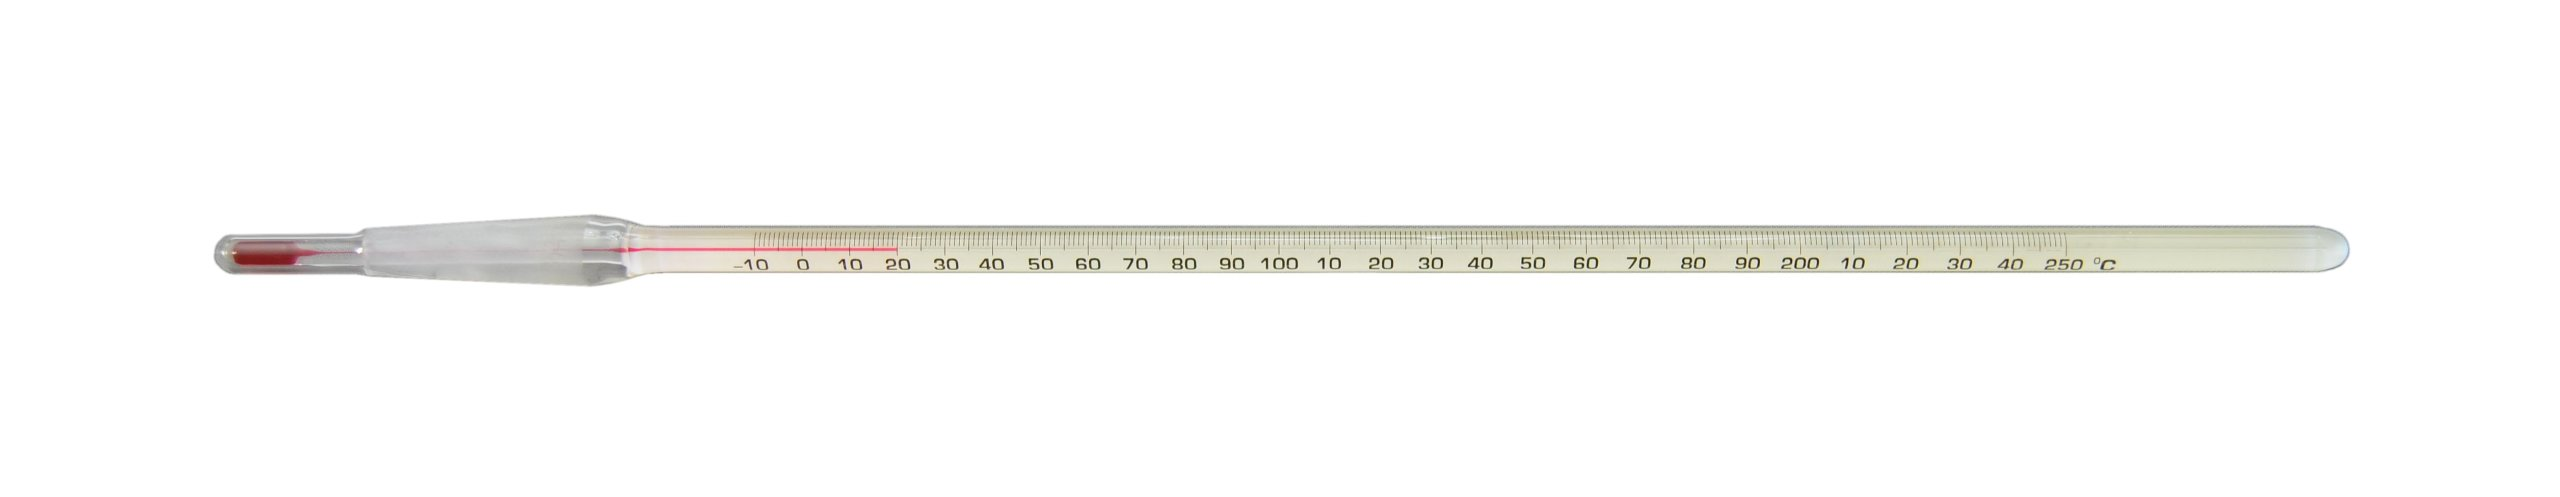 Thermco ACCST1801150S Precision Red Spirit Filled 10/18 Standard Taper Joint Thermometer, -10° to 150°C Range, 1°C Division, 25mm Immersion by THERMCO (Image #1)